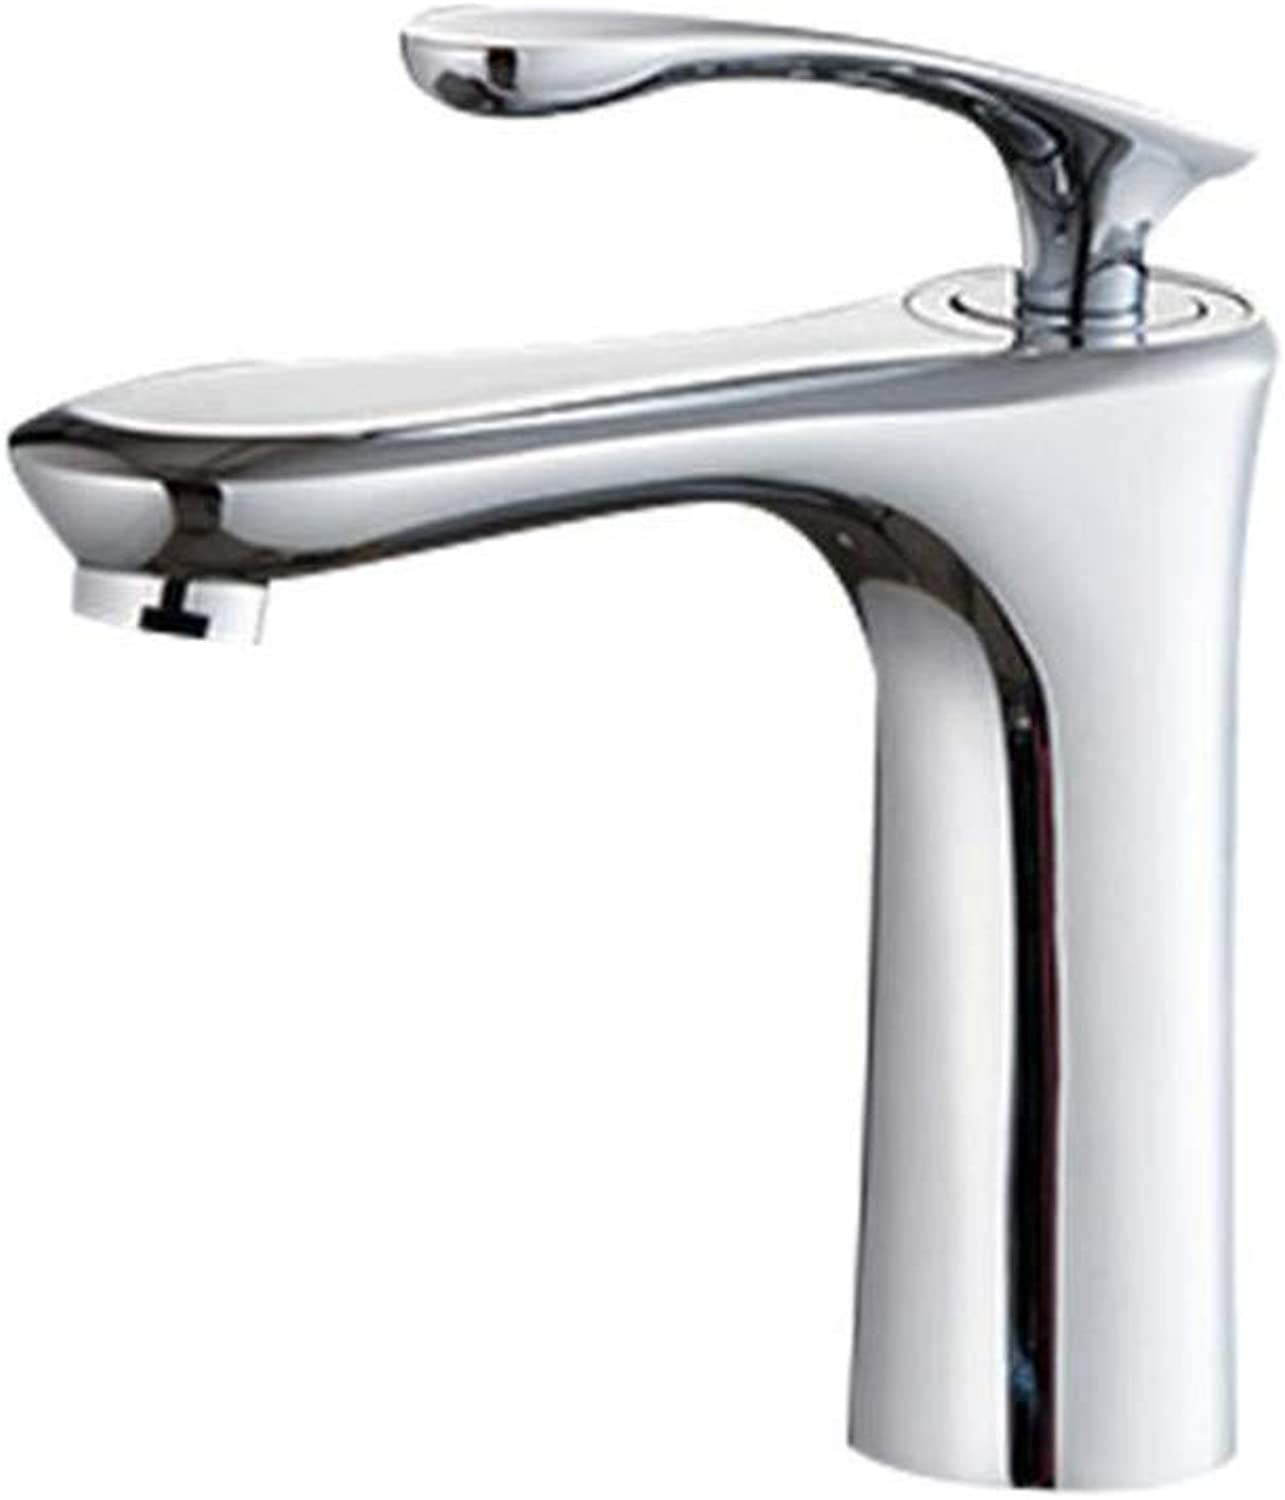 Bathroom Sink Basin Lever Mixer Tap Fine Copper Faucet Kitchen Washbasin Universal Cold and Hot Water Bathroom Faucet